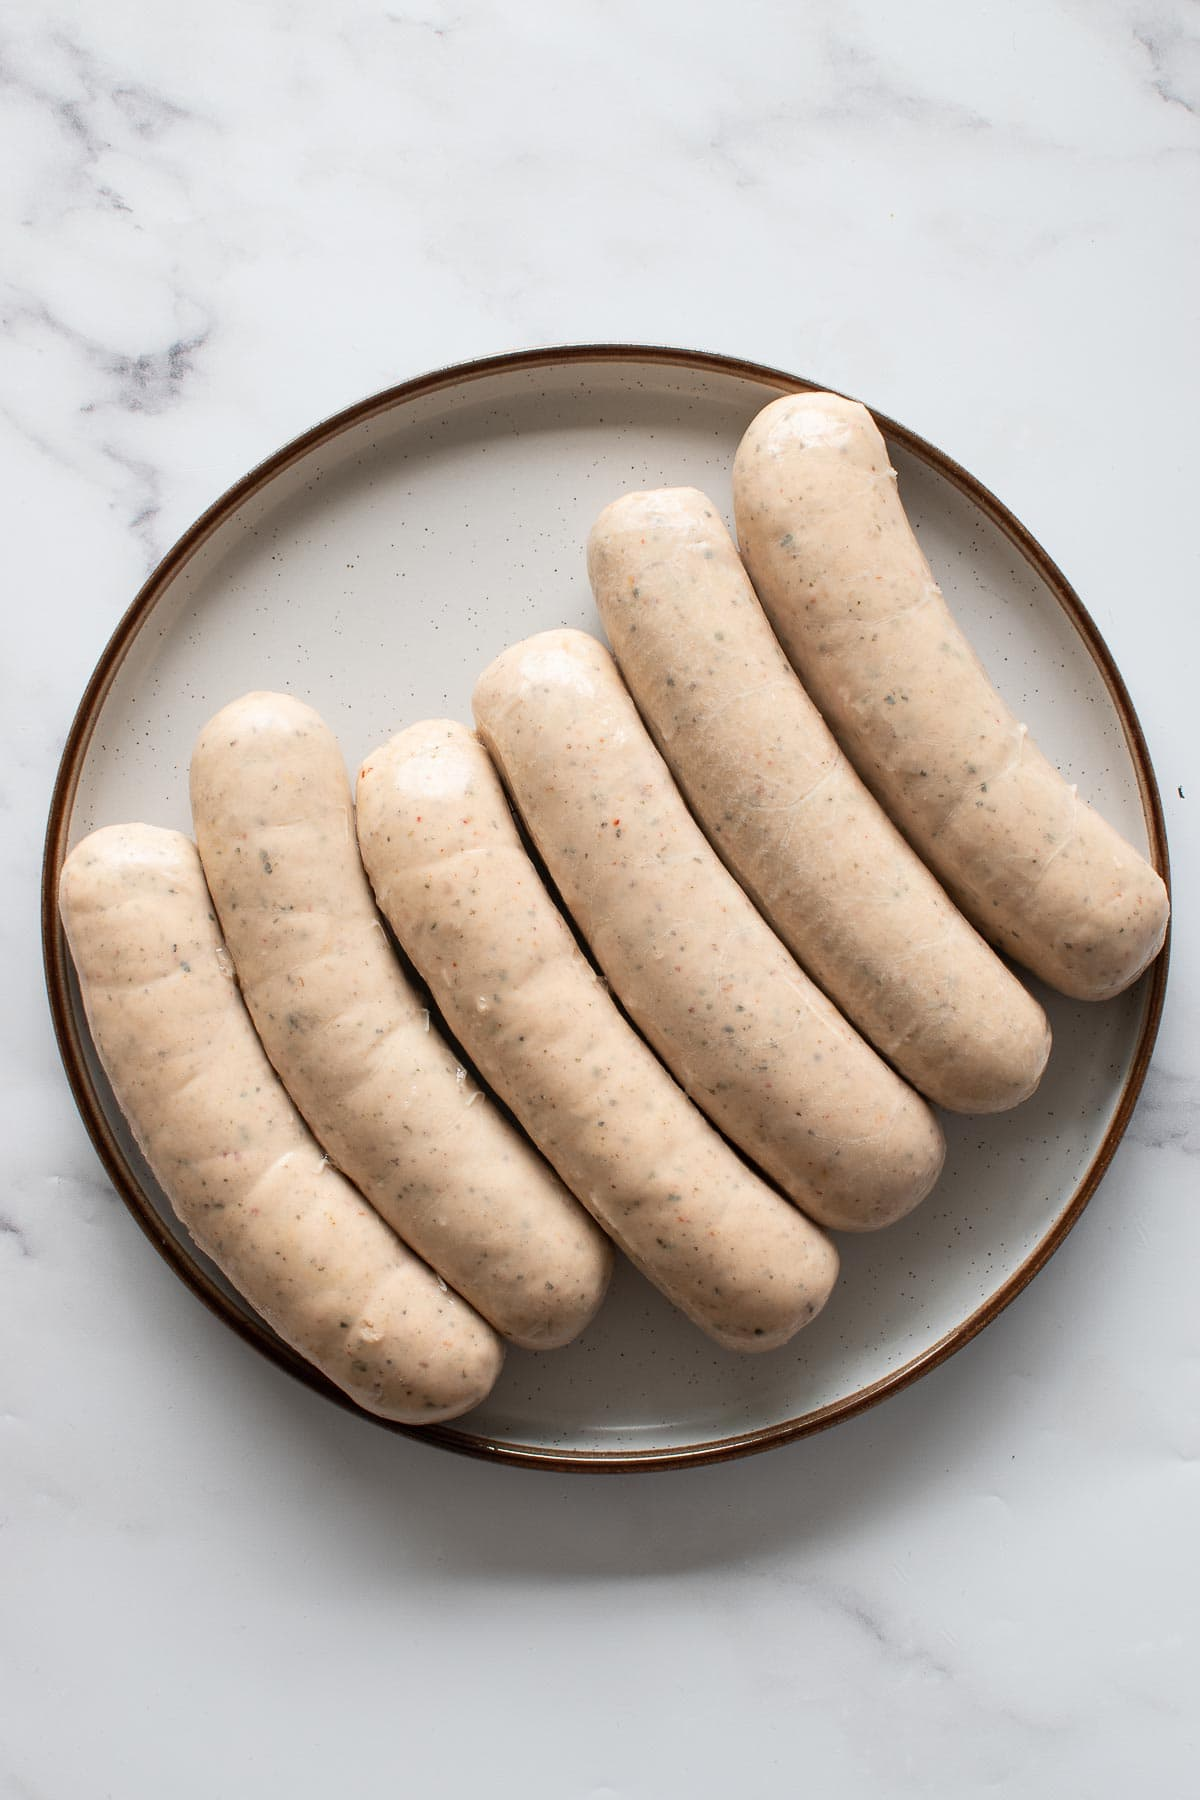 Raw bratwurst sausages on a plate.